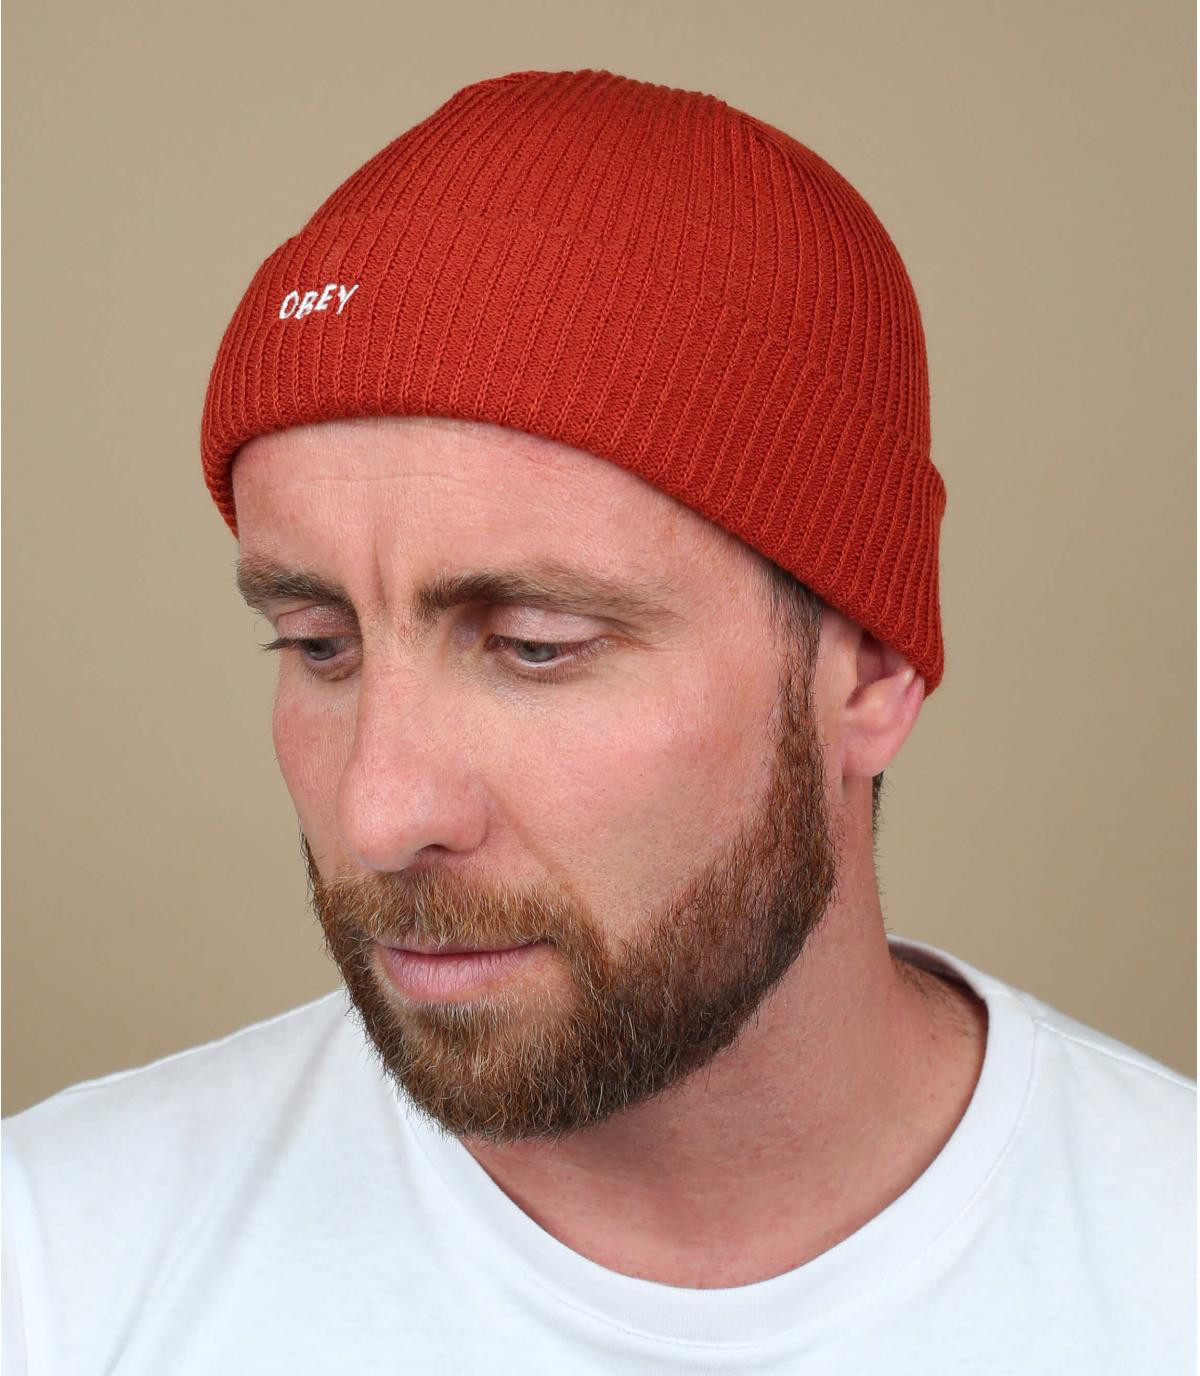 Obey Red Beanie Hat